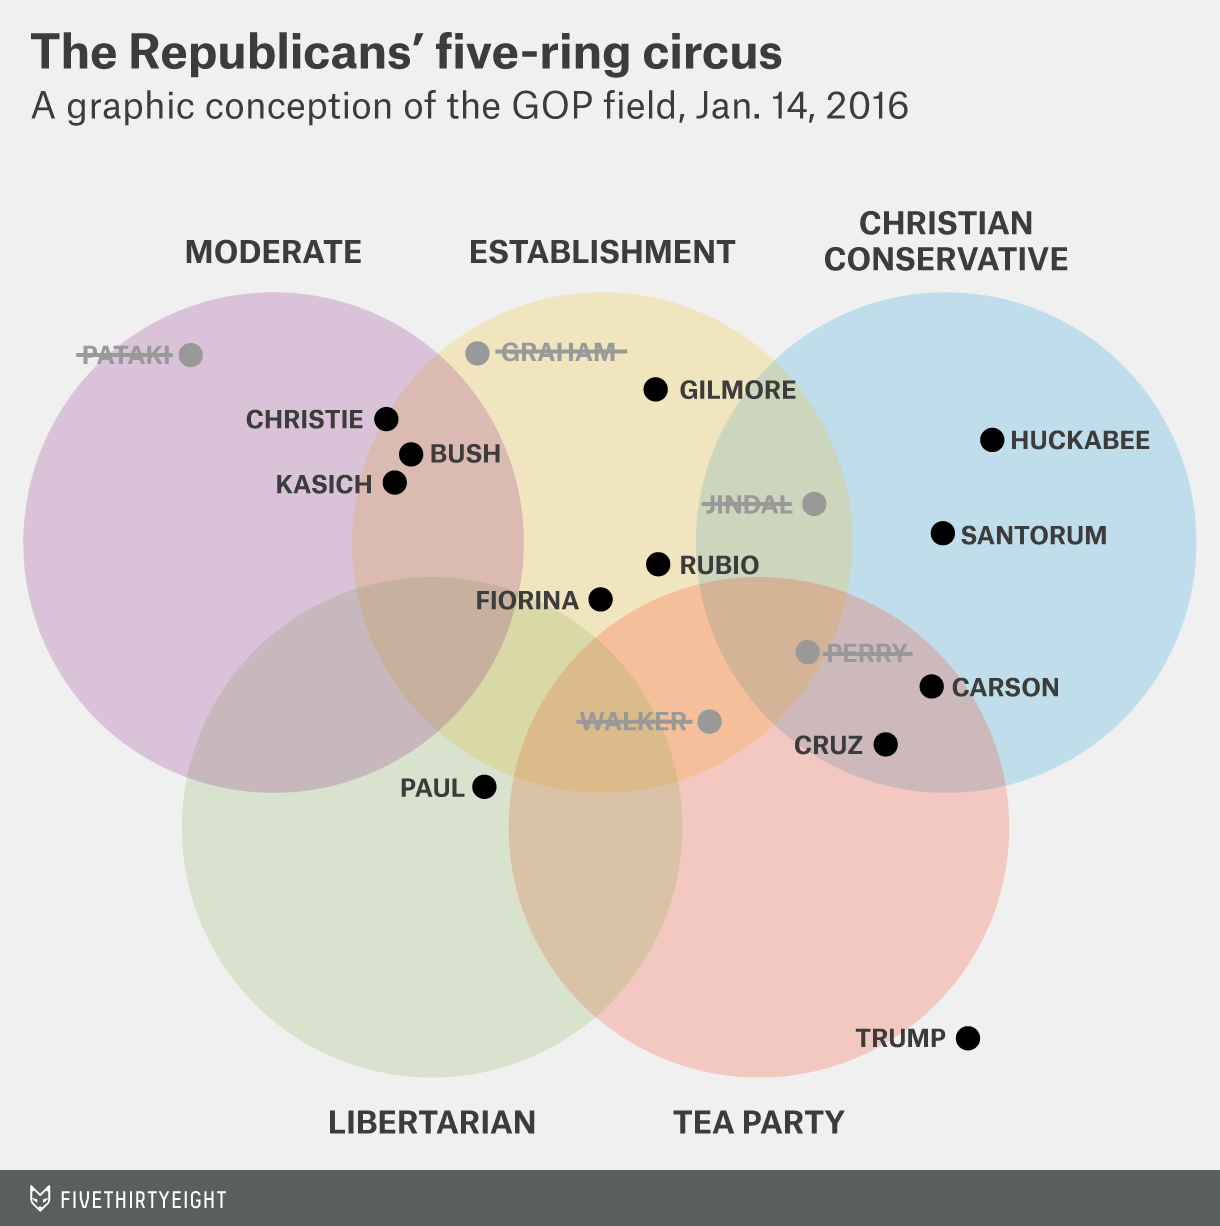 The Republican's five-ring circus